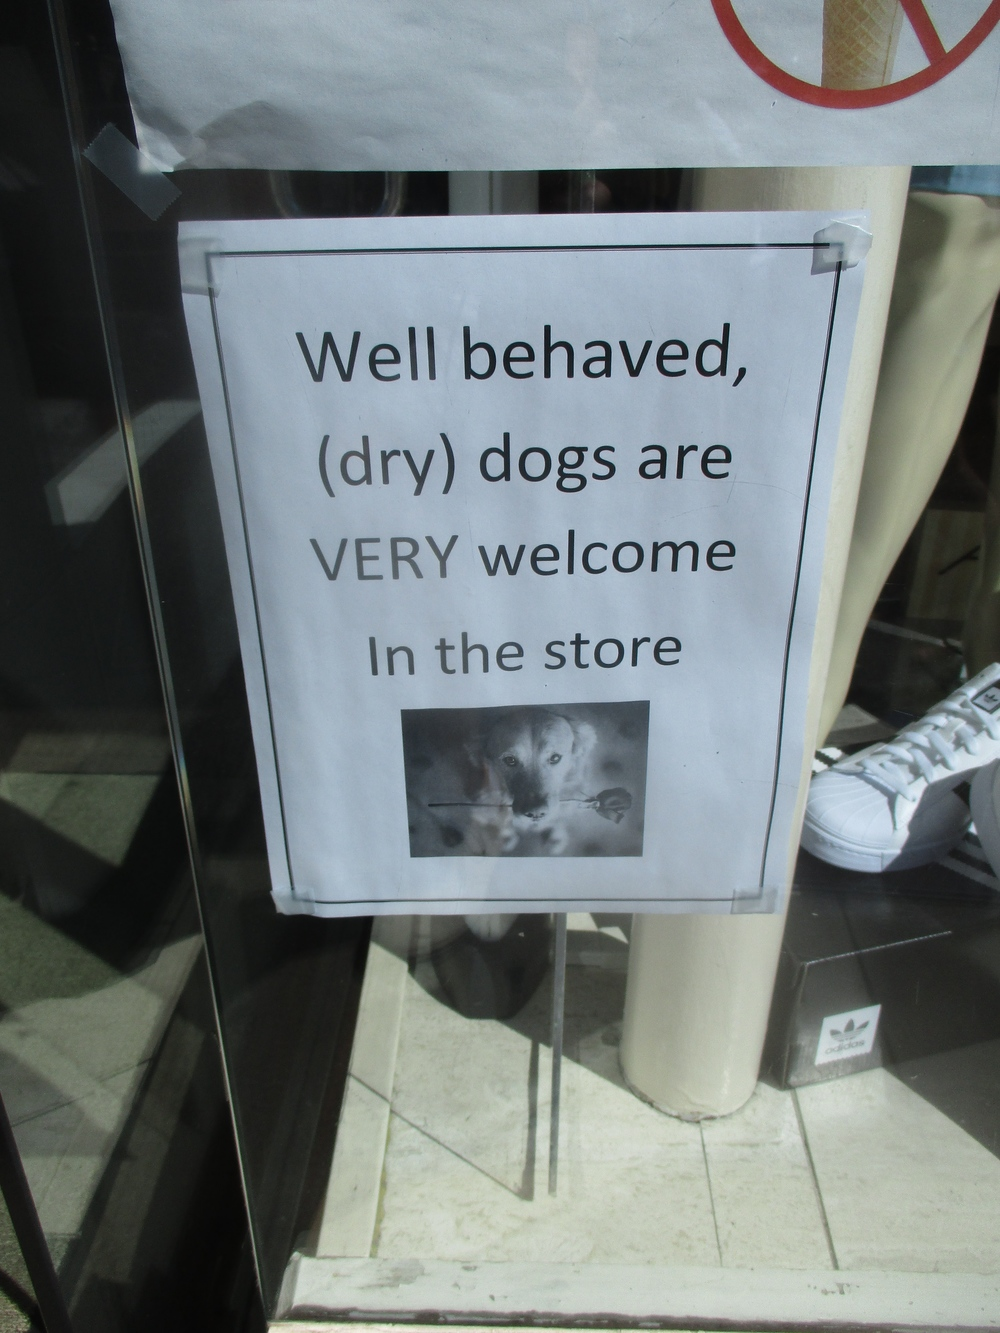 Here we have a different sort of Canine Admonition, but Etiquetteer has to wonder how successful it is.